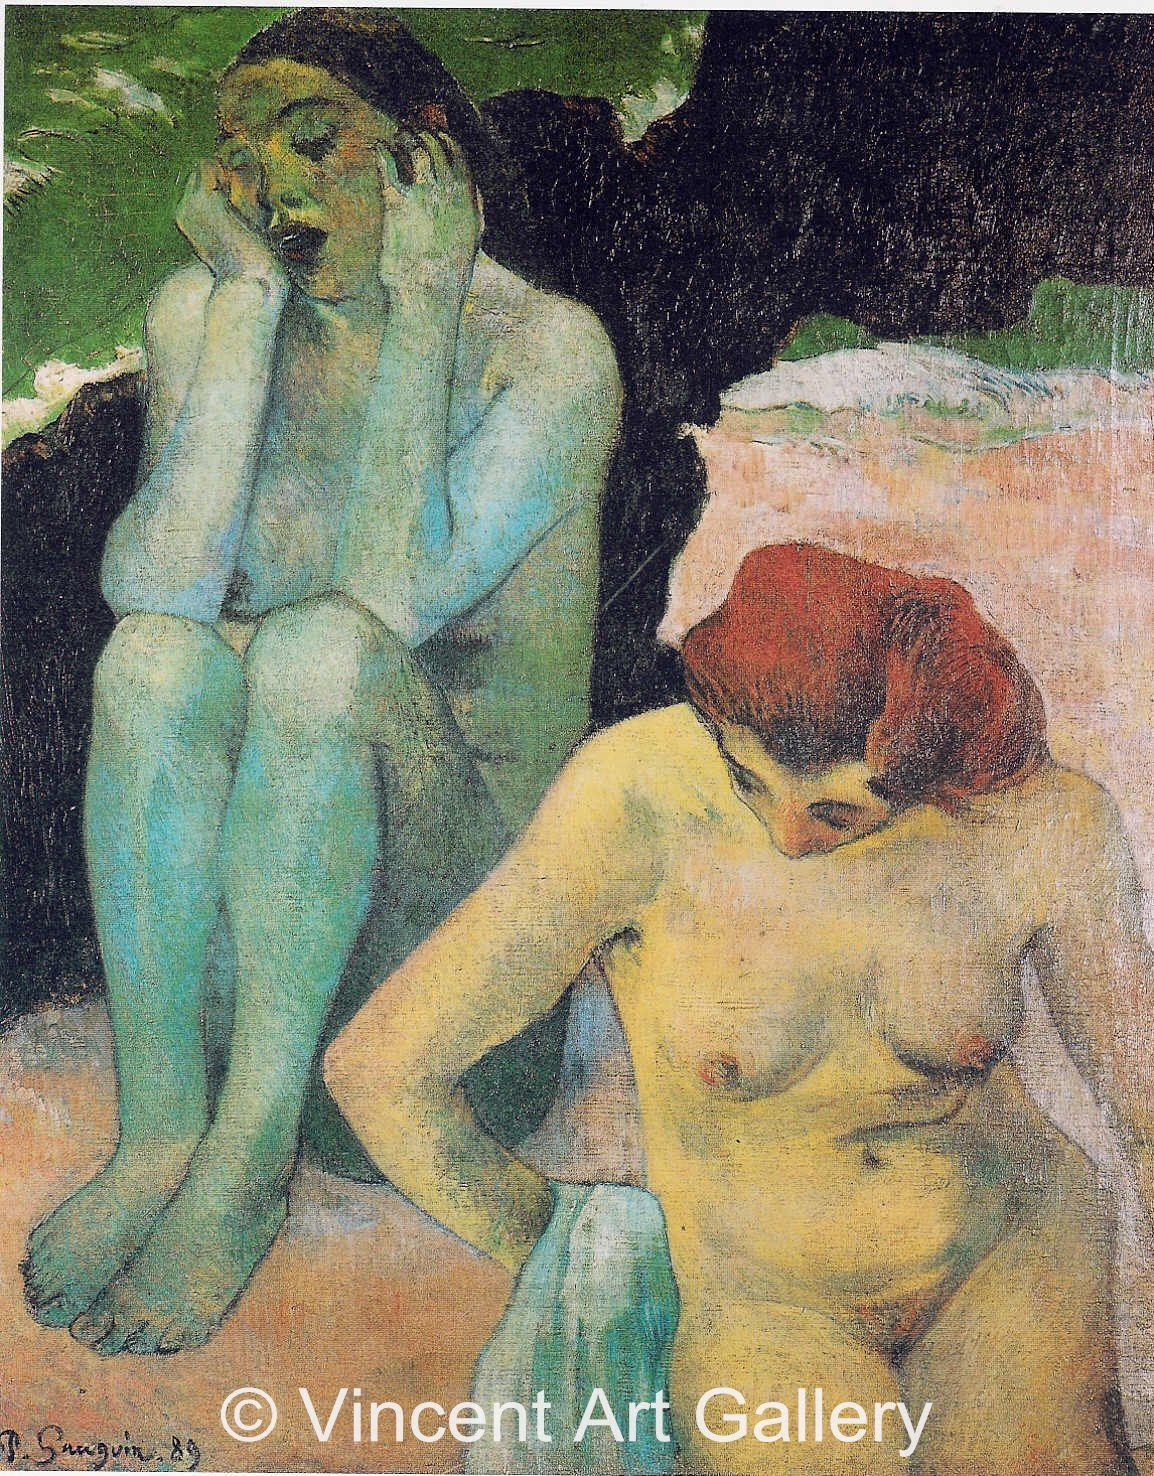 A3620, GAUGUIN, Woman Bathing, Life and Death, 1889